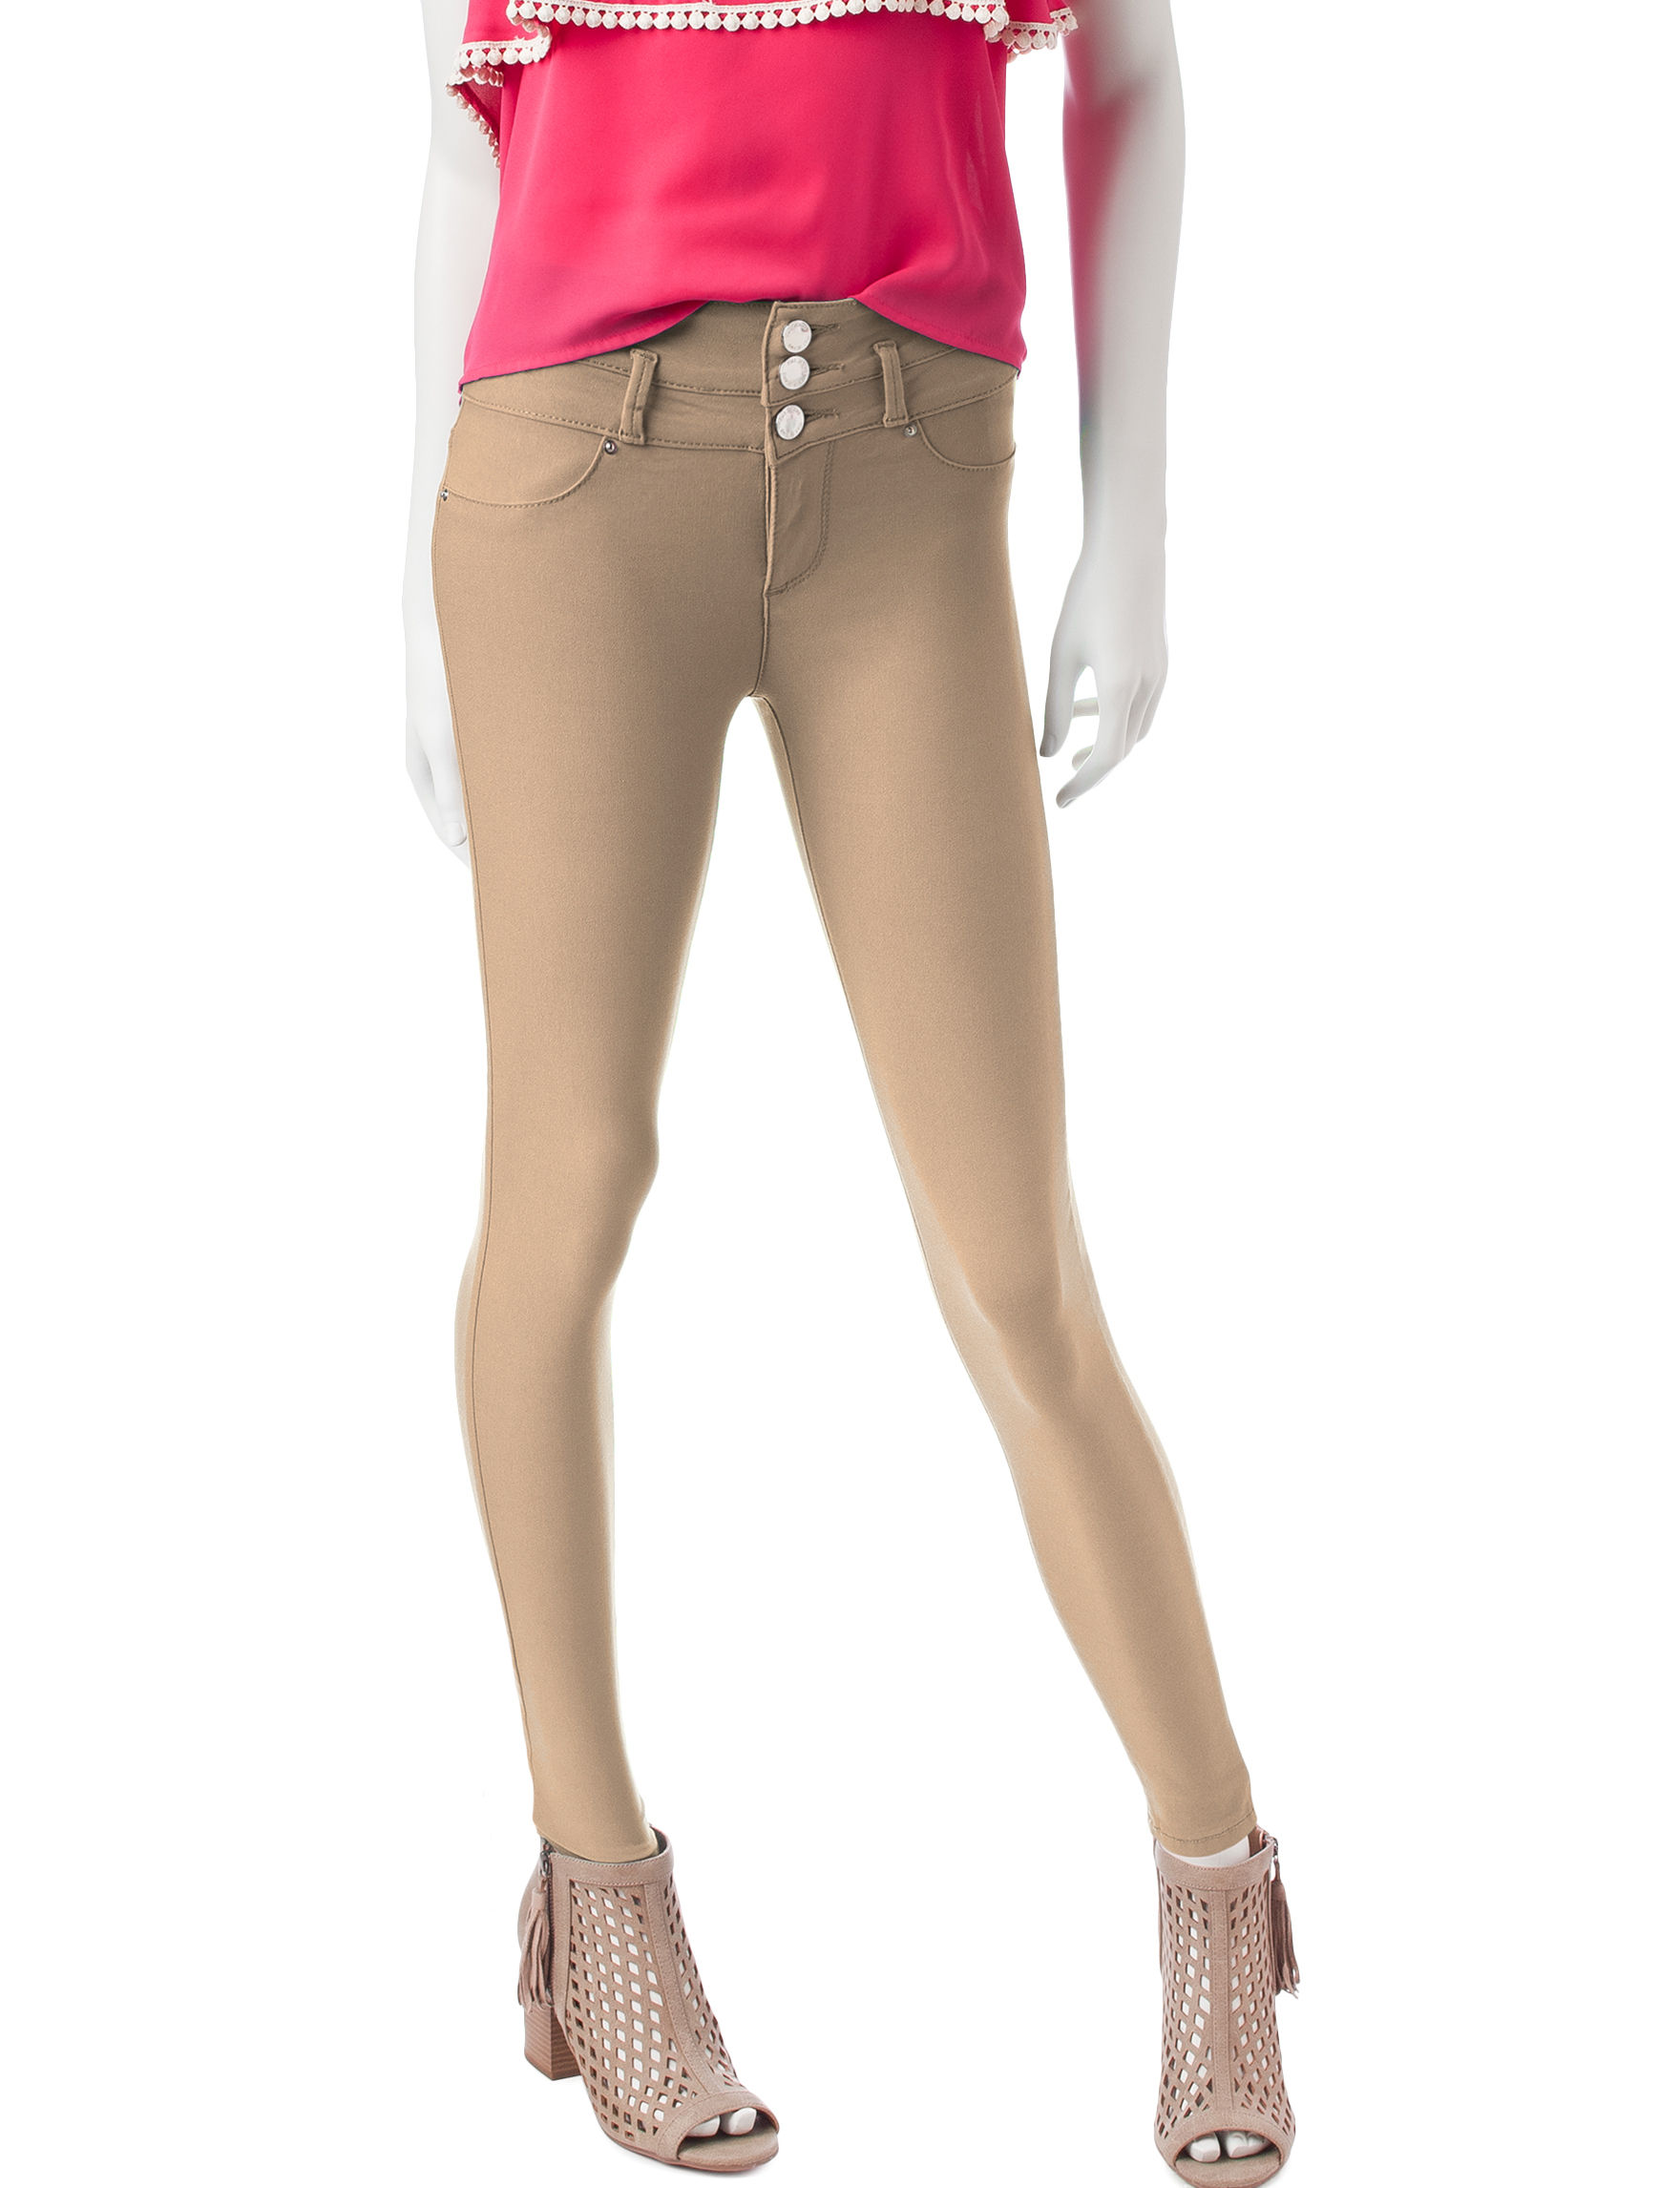 Wishful Park Khaki Skinny Stretch